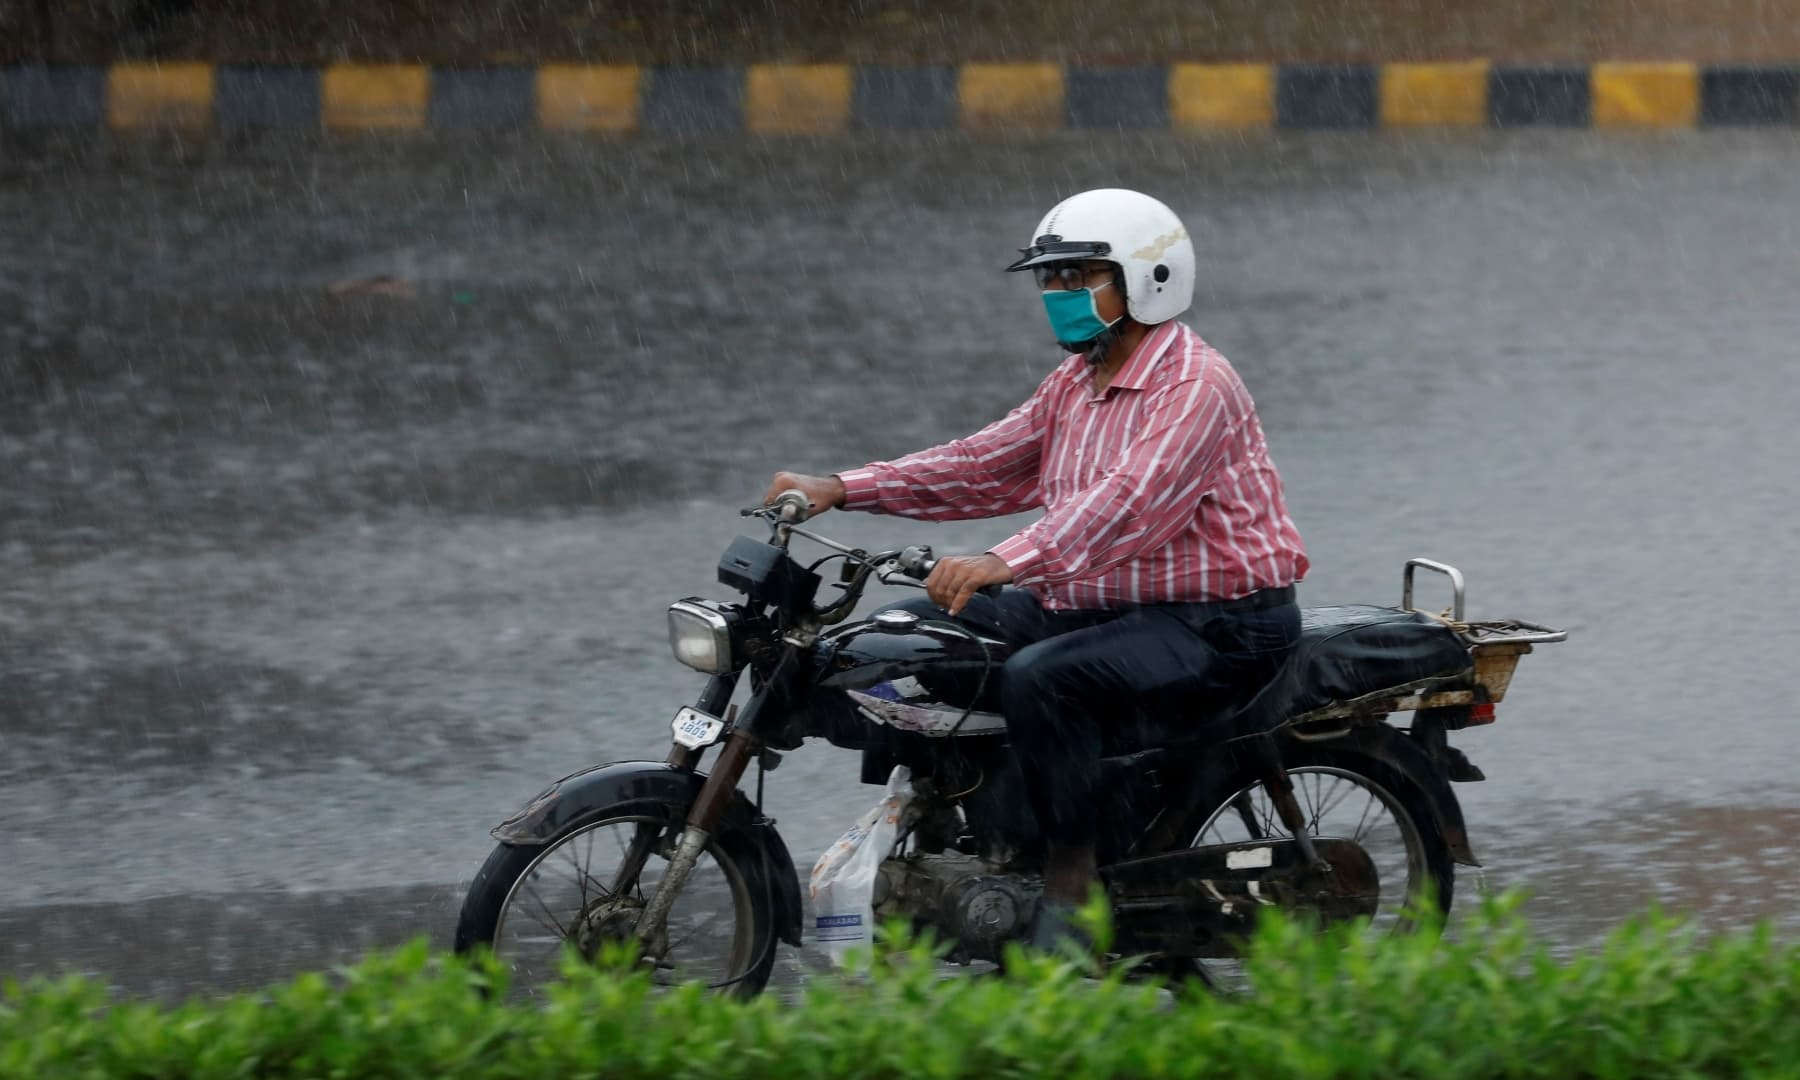 A man wearing a protective mask rides a motorcycle during the season's first monsoon rain in Karachi on July 6. — Reuters